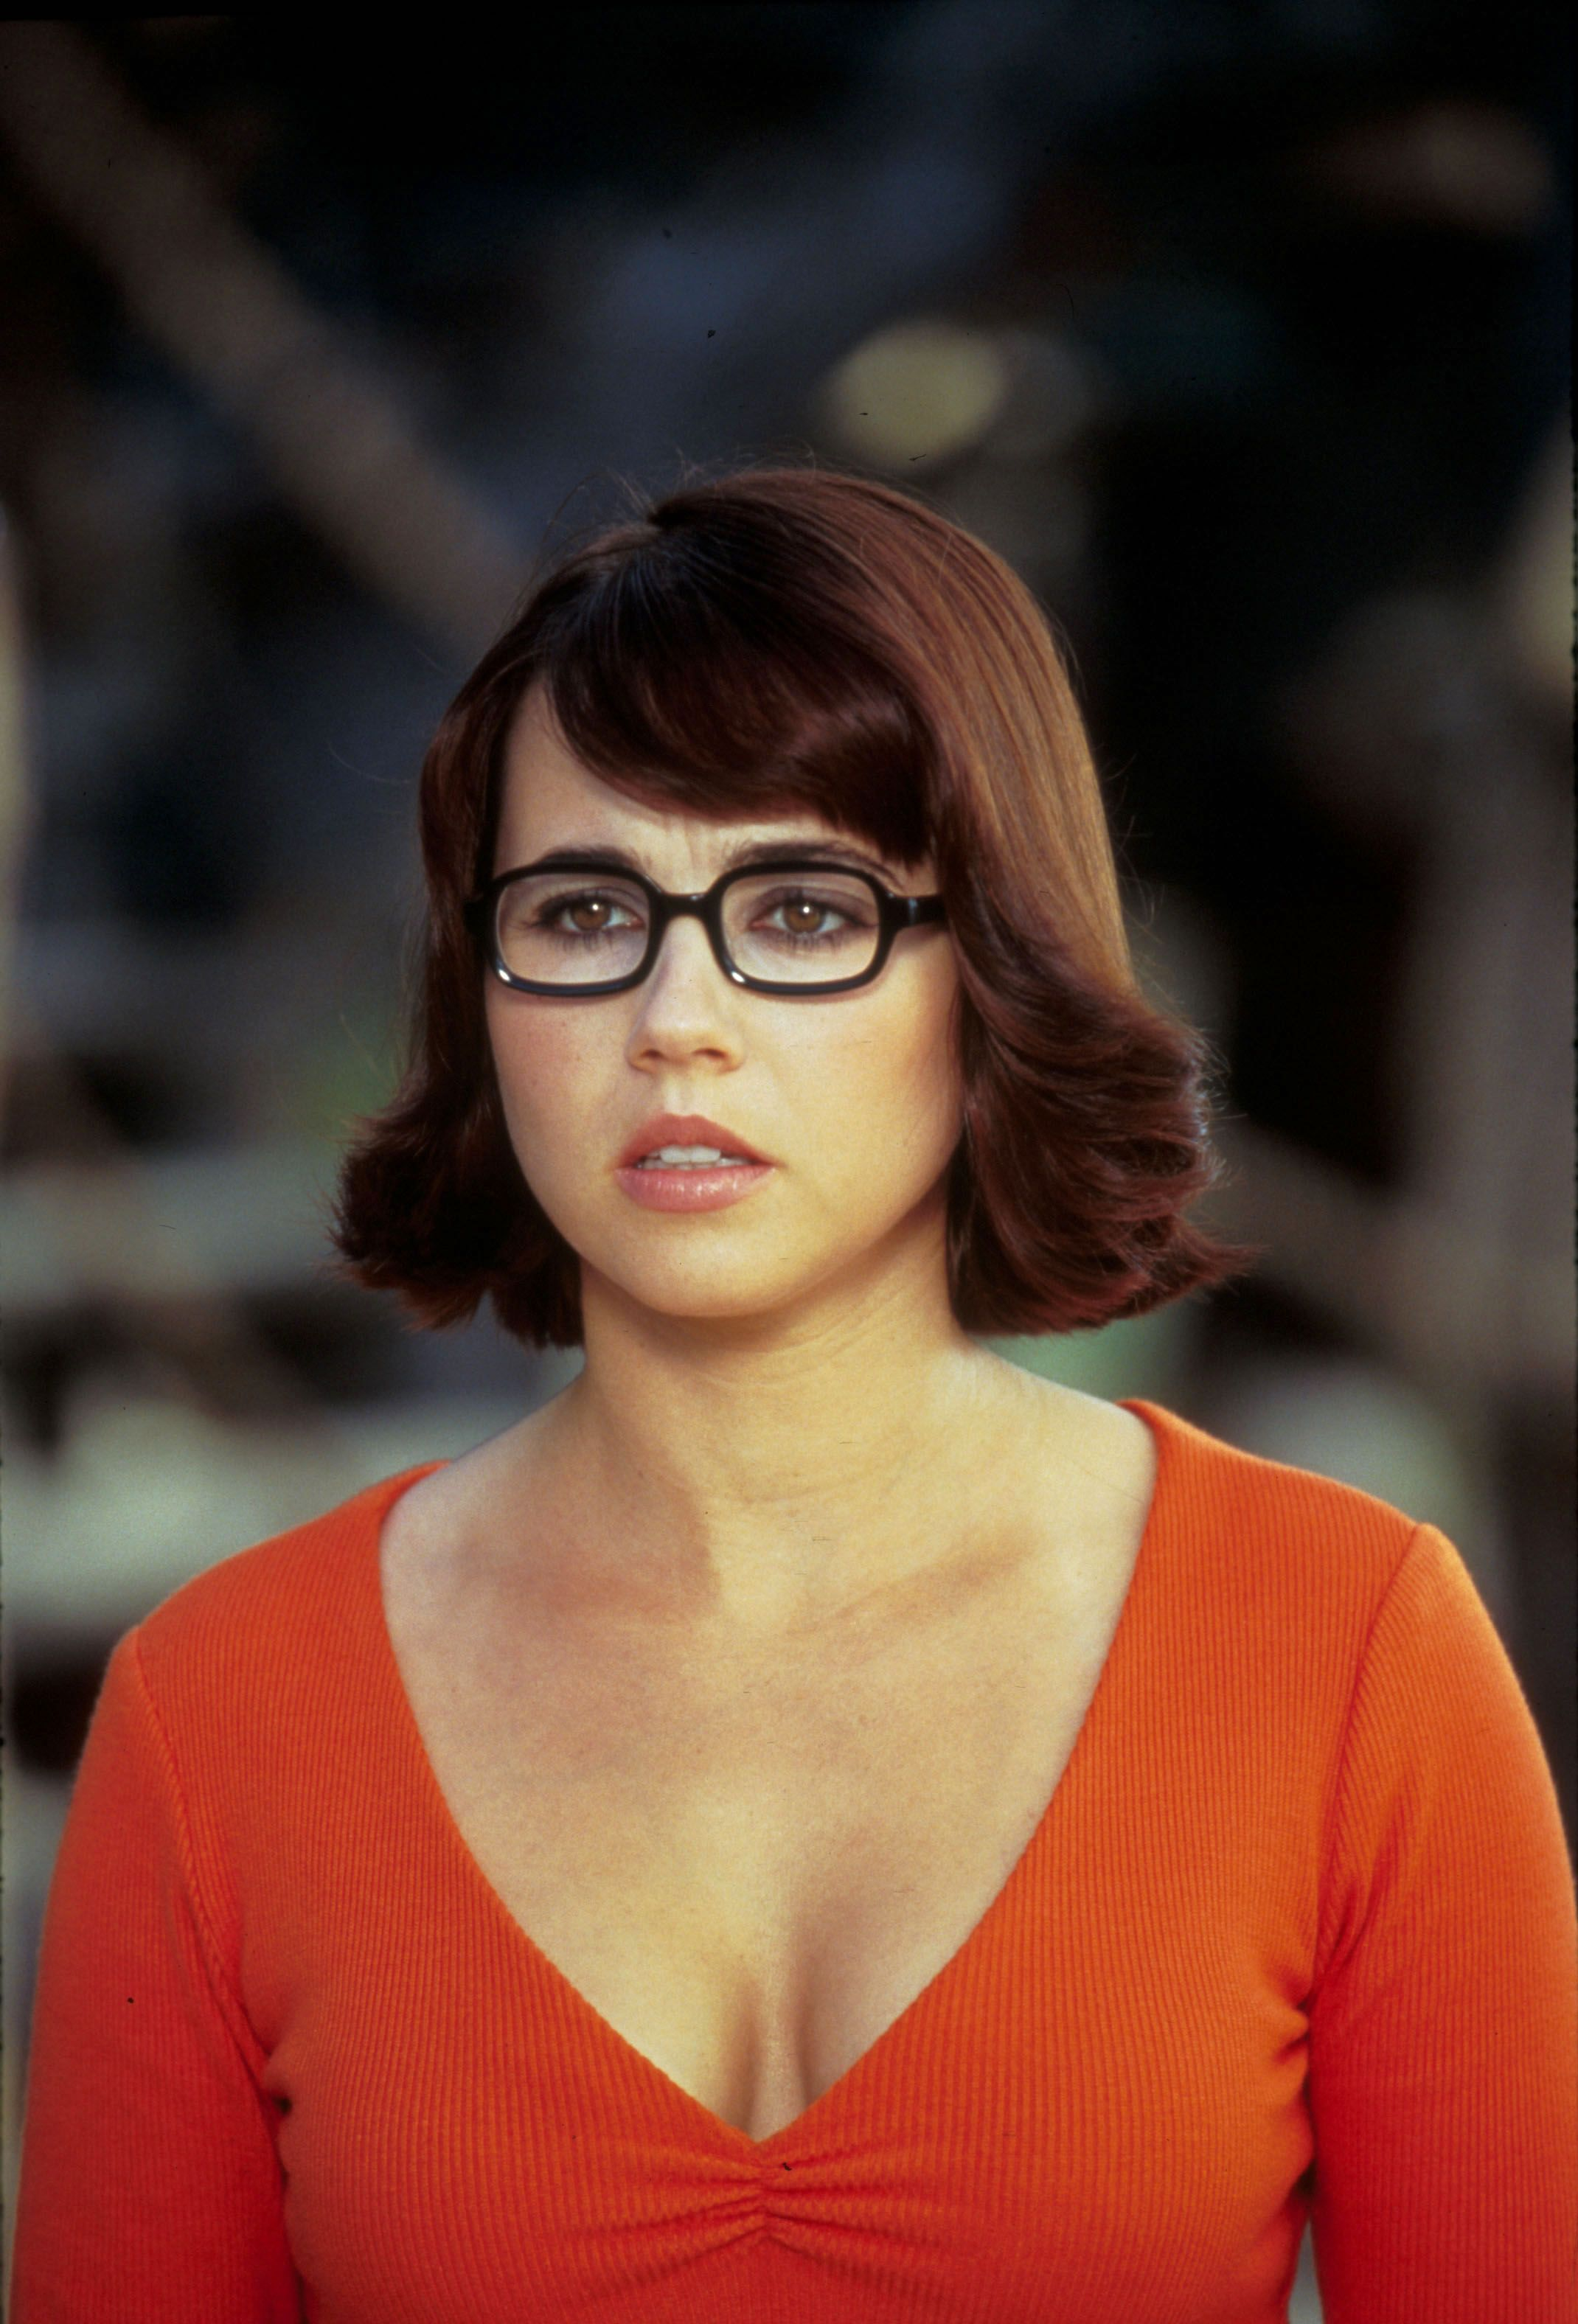 Marvel S James Gunn Tried To Make Velma A Lesbian In Scooby Doo